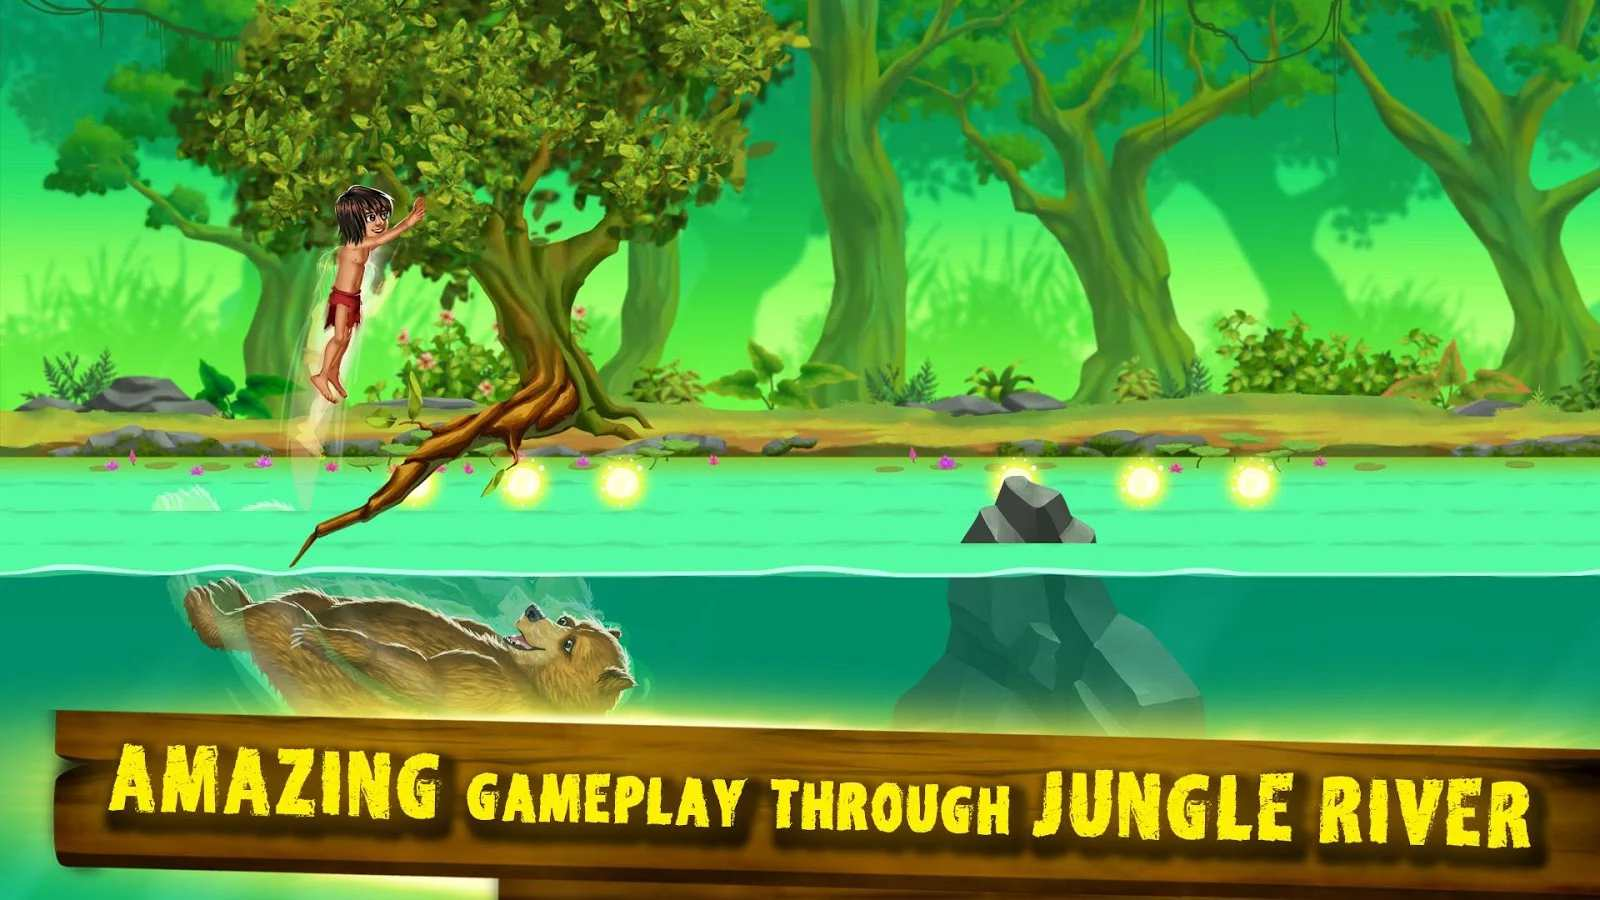 Mowgli Jump - Jungle Book Game